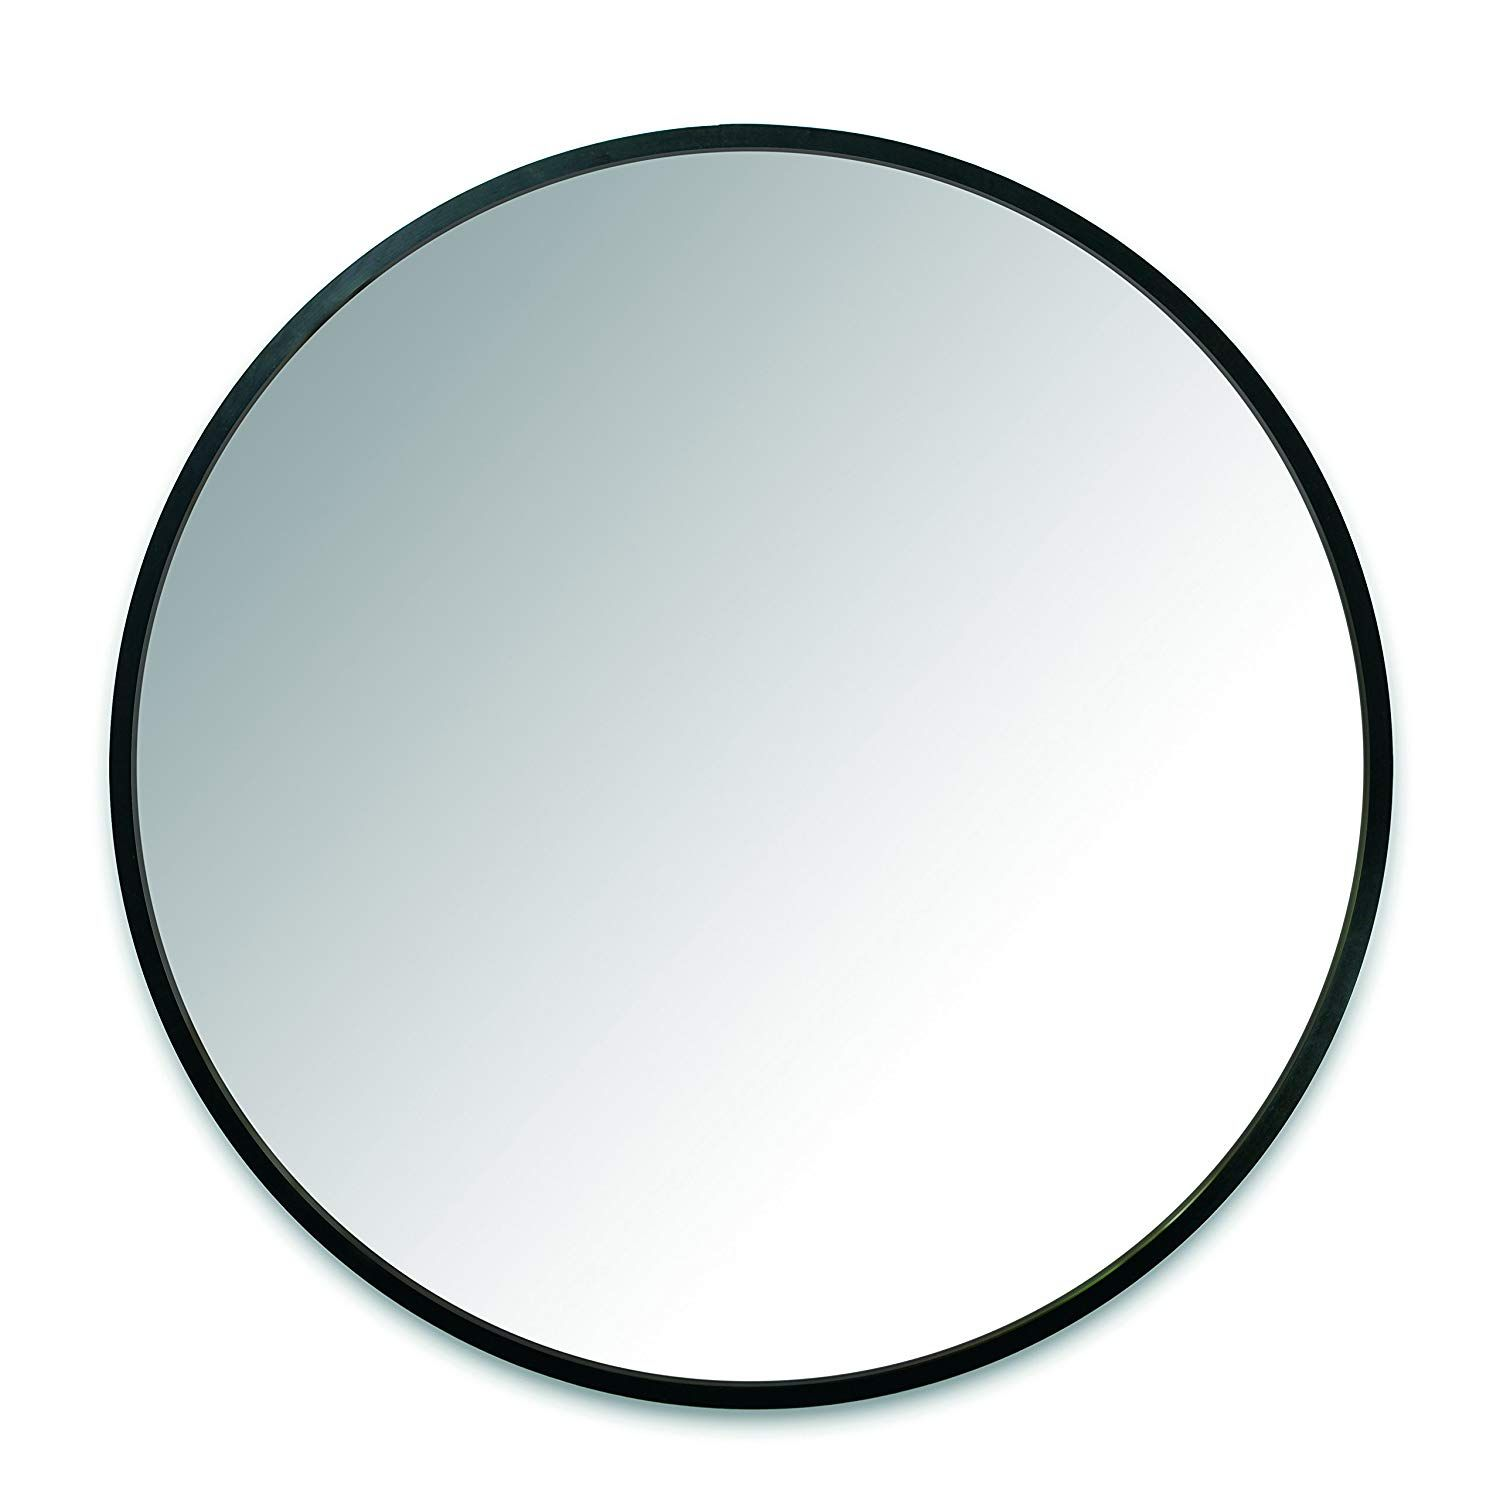 Amazon Com Umbra Hub Wall Mirror With Rubber Frame 37 Inch Round Wall Mirror For Entryways Washrooms Livi Round Wall Mirror Mirror Wall Framed Mirror Wall